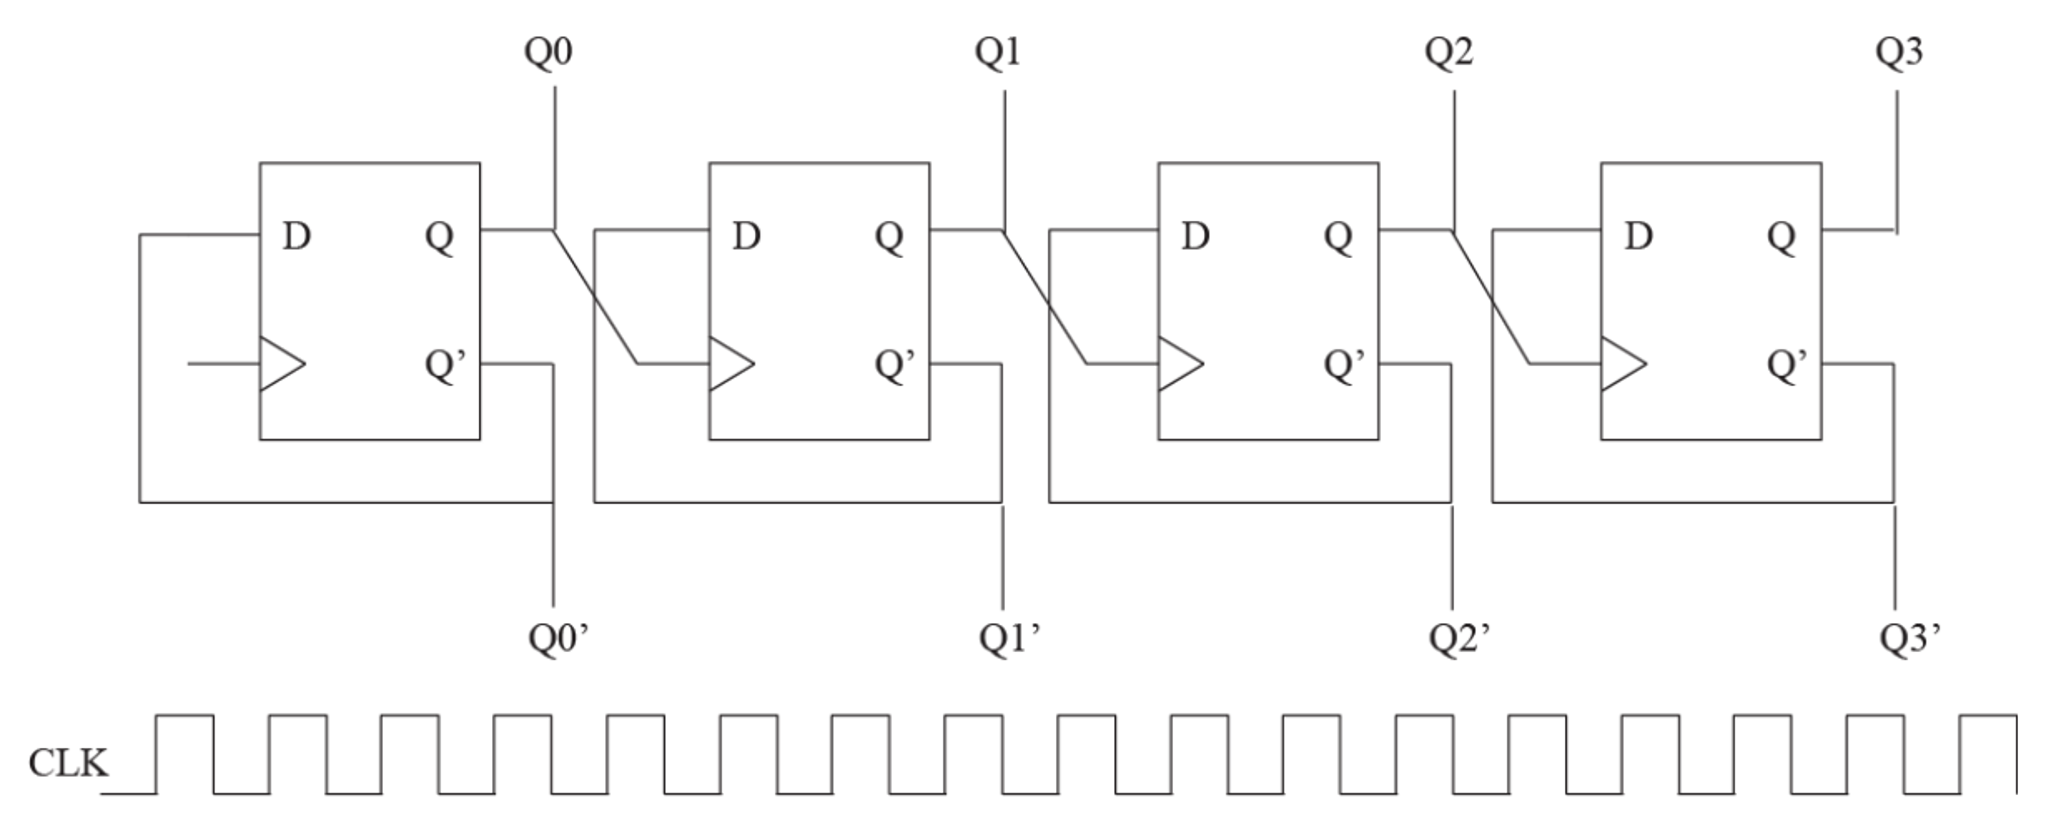 Solved Assume The Circuits Below Use Positive Edge Trigge Circuit Diagram Of D Flip Flop Now Each Has An Active Low Reset Input That Would Force Output Q To Go 0 Immediately Describe Logic Could Be Applied